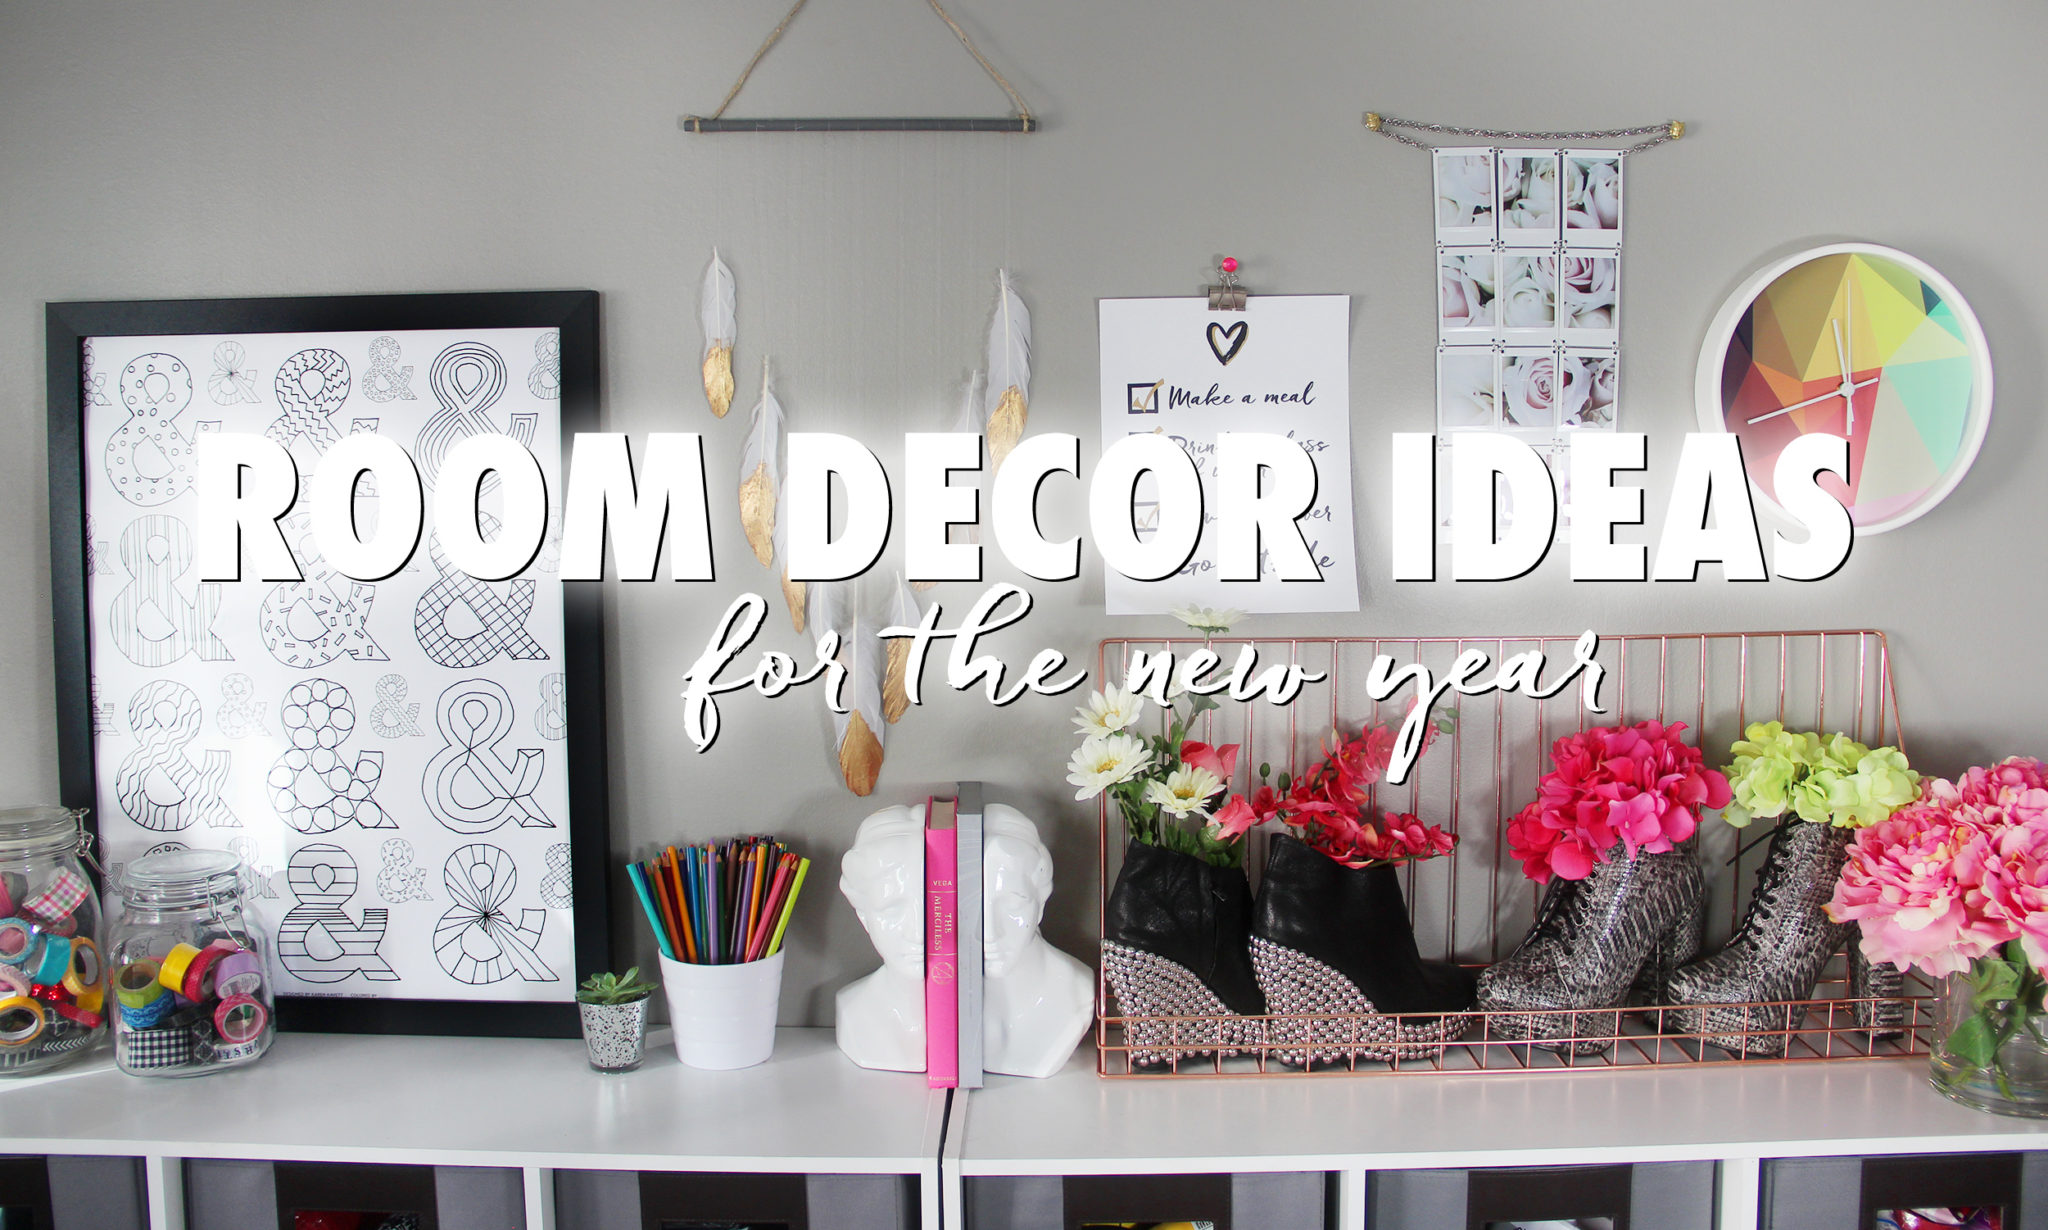 3 Room Decor Ideas For 2016 Free Printable Motivational Poster Karen Kavett